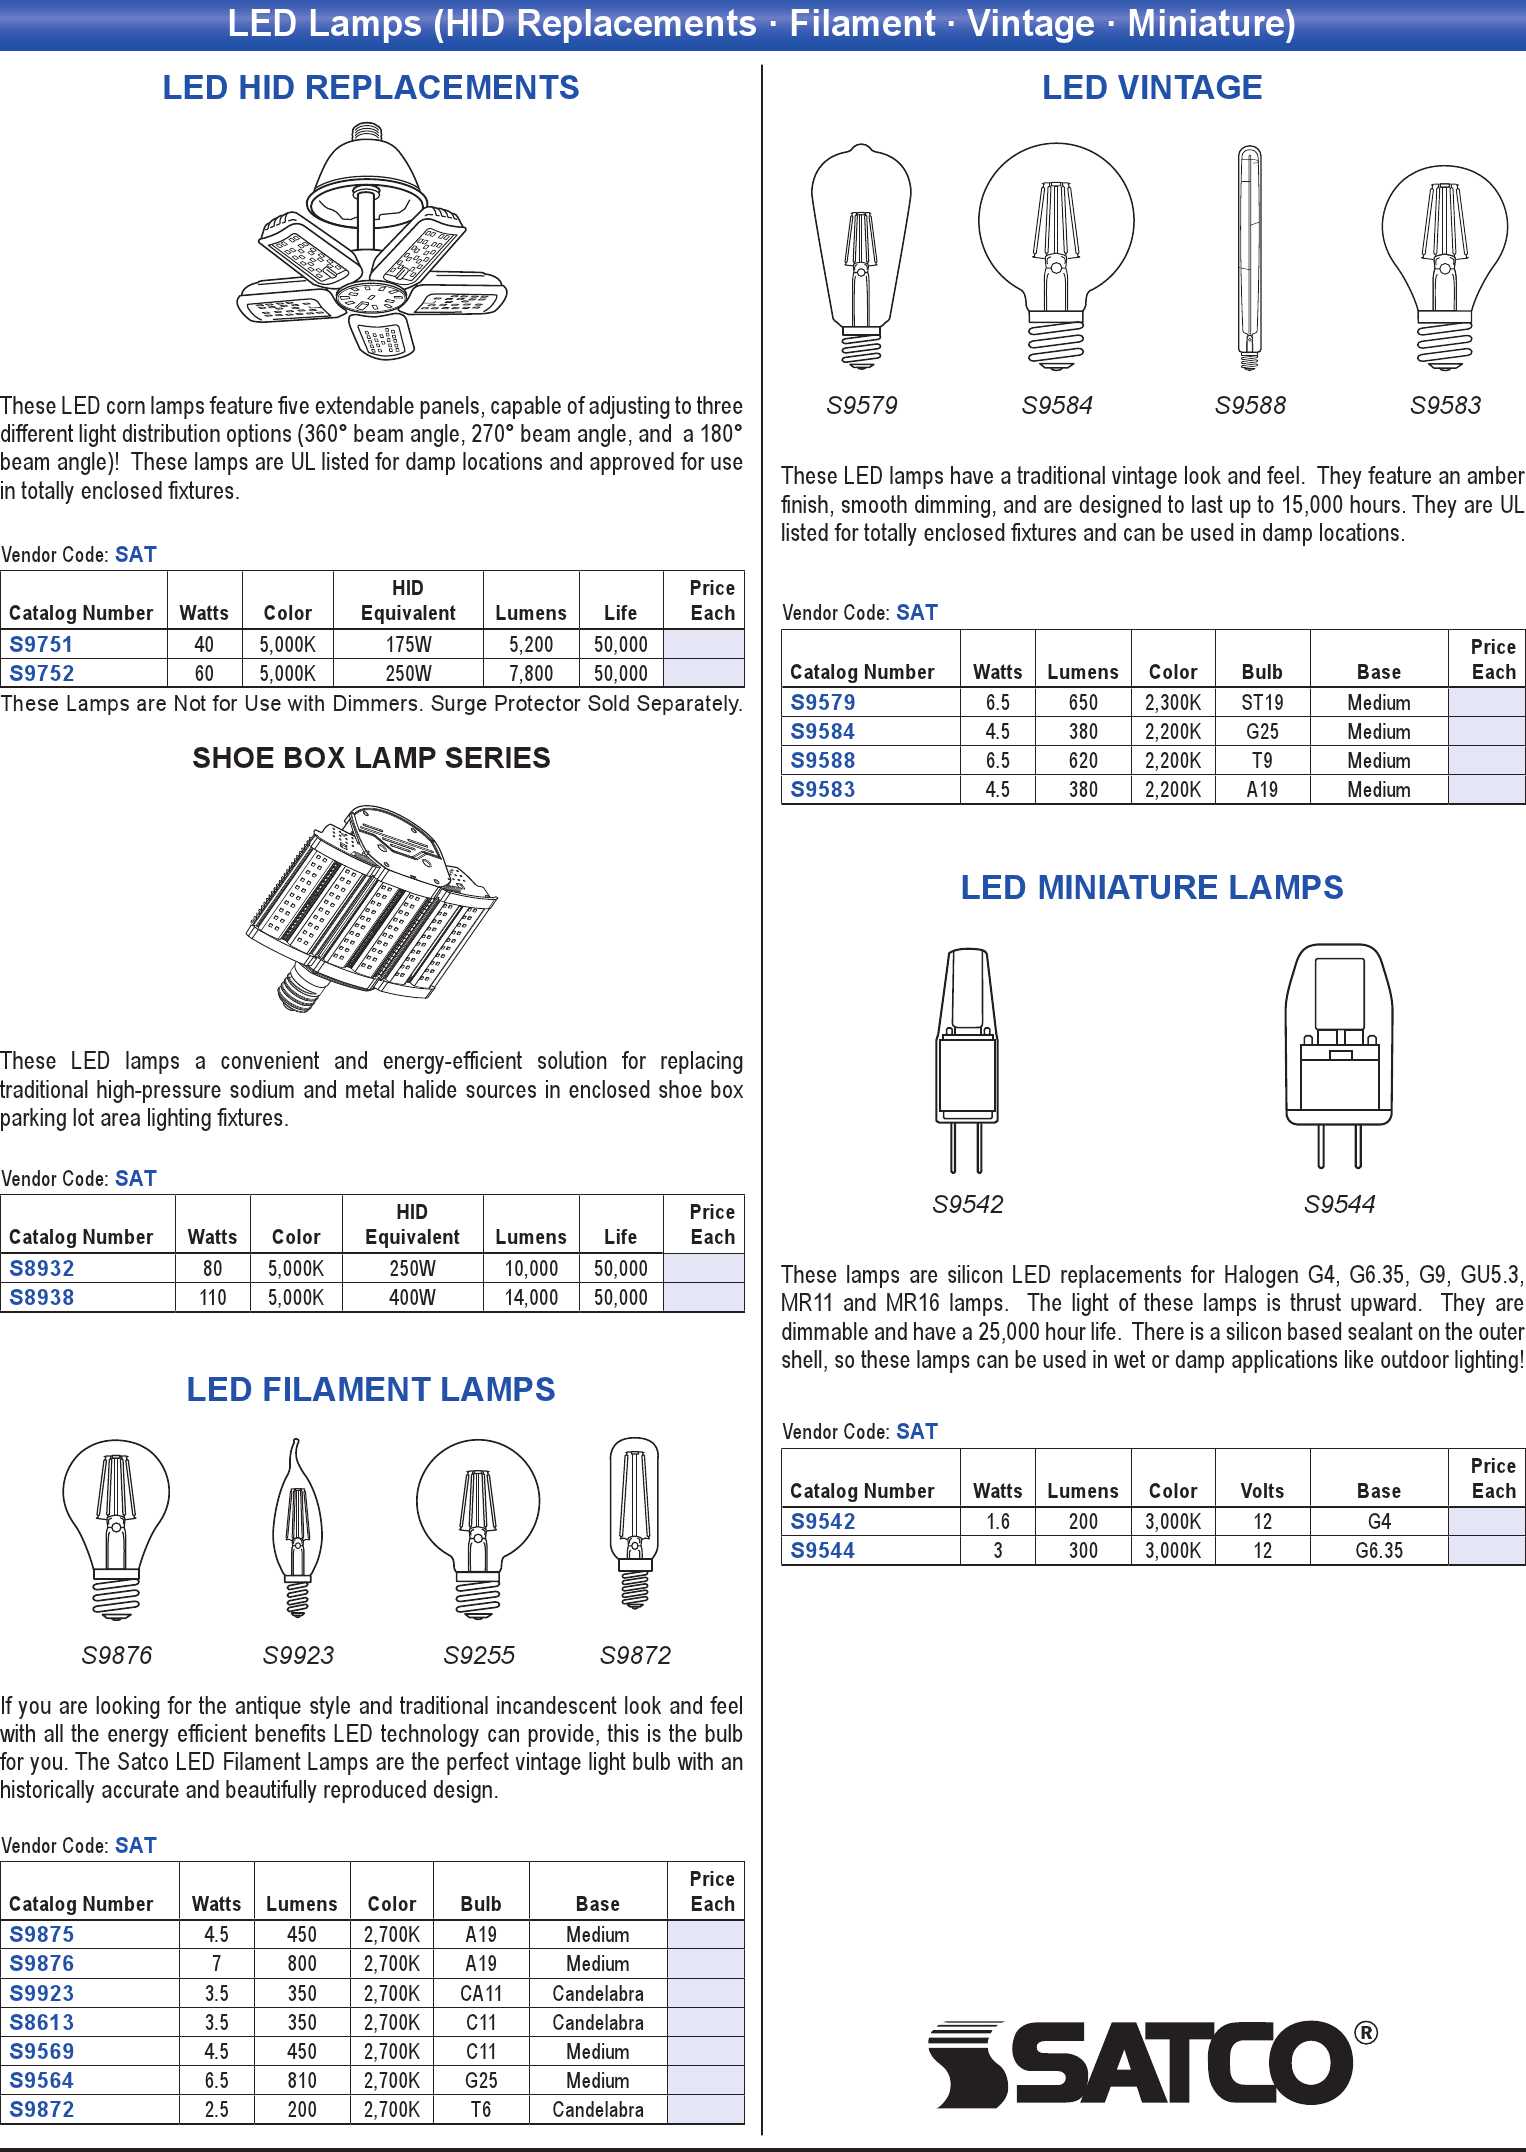 Led Lamps Hid Replacements Filament Vintage Miniature Lamp Cord Wiring Diagram Add Item To Cart